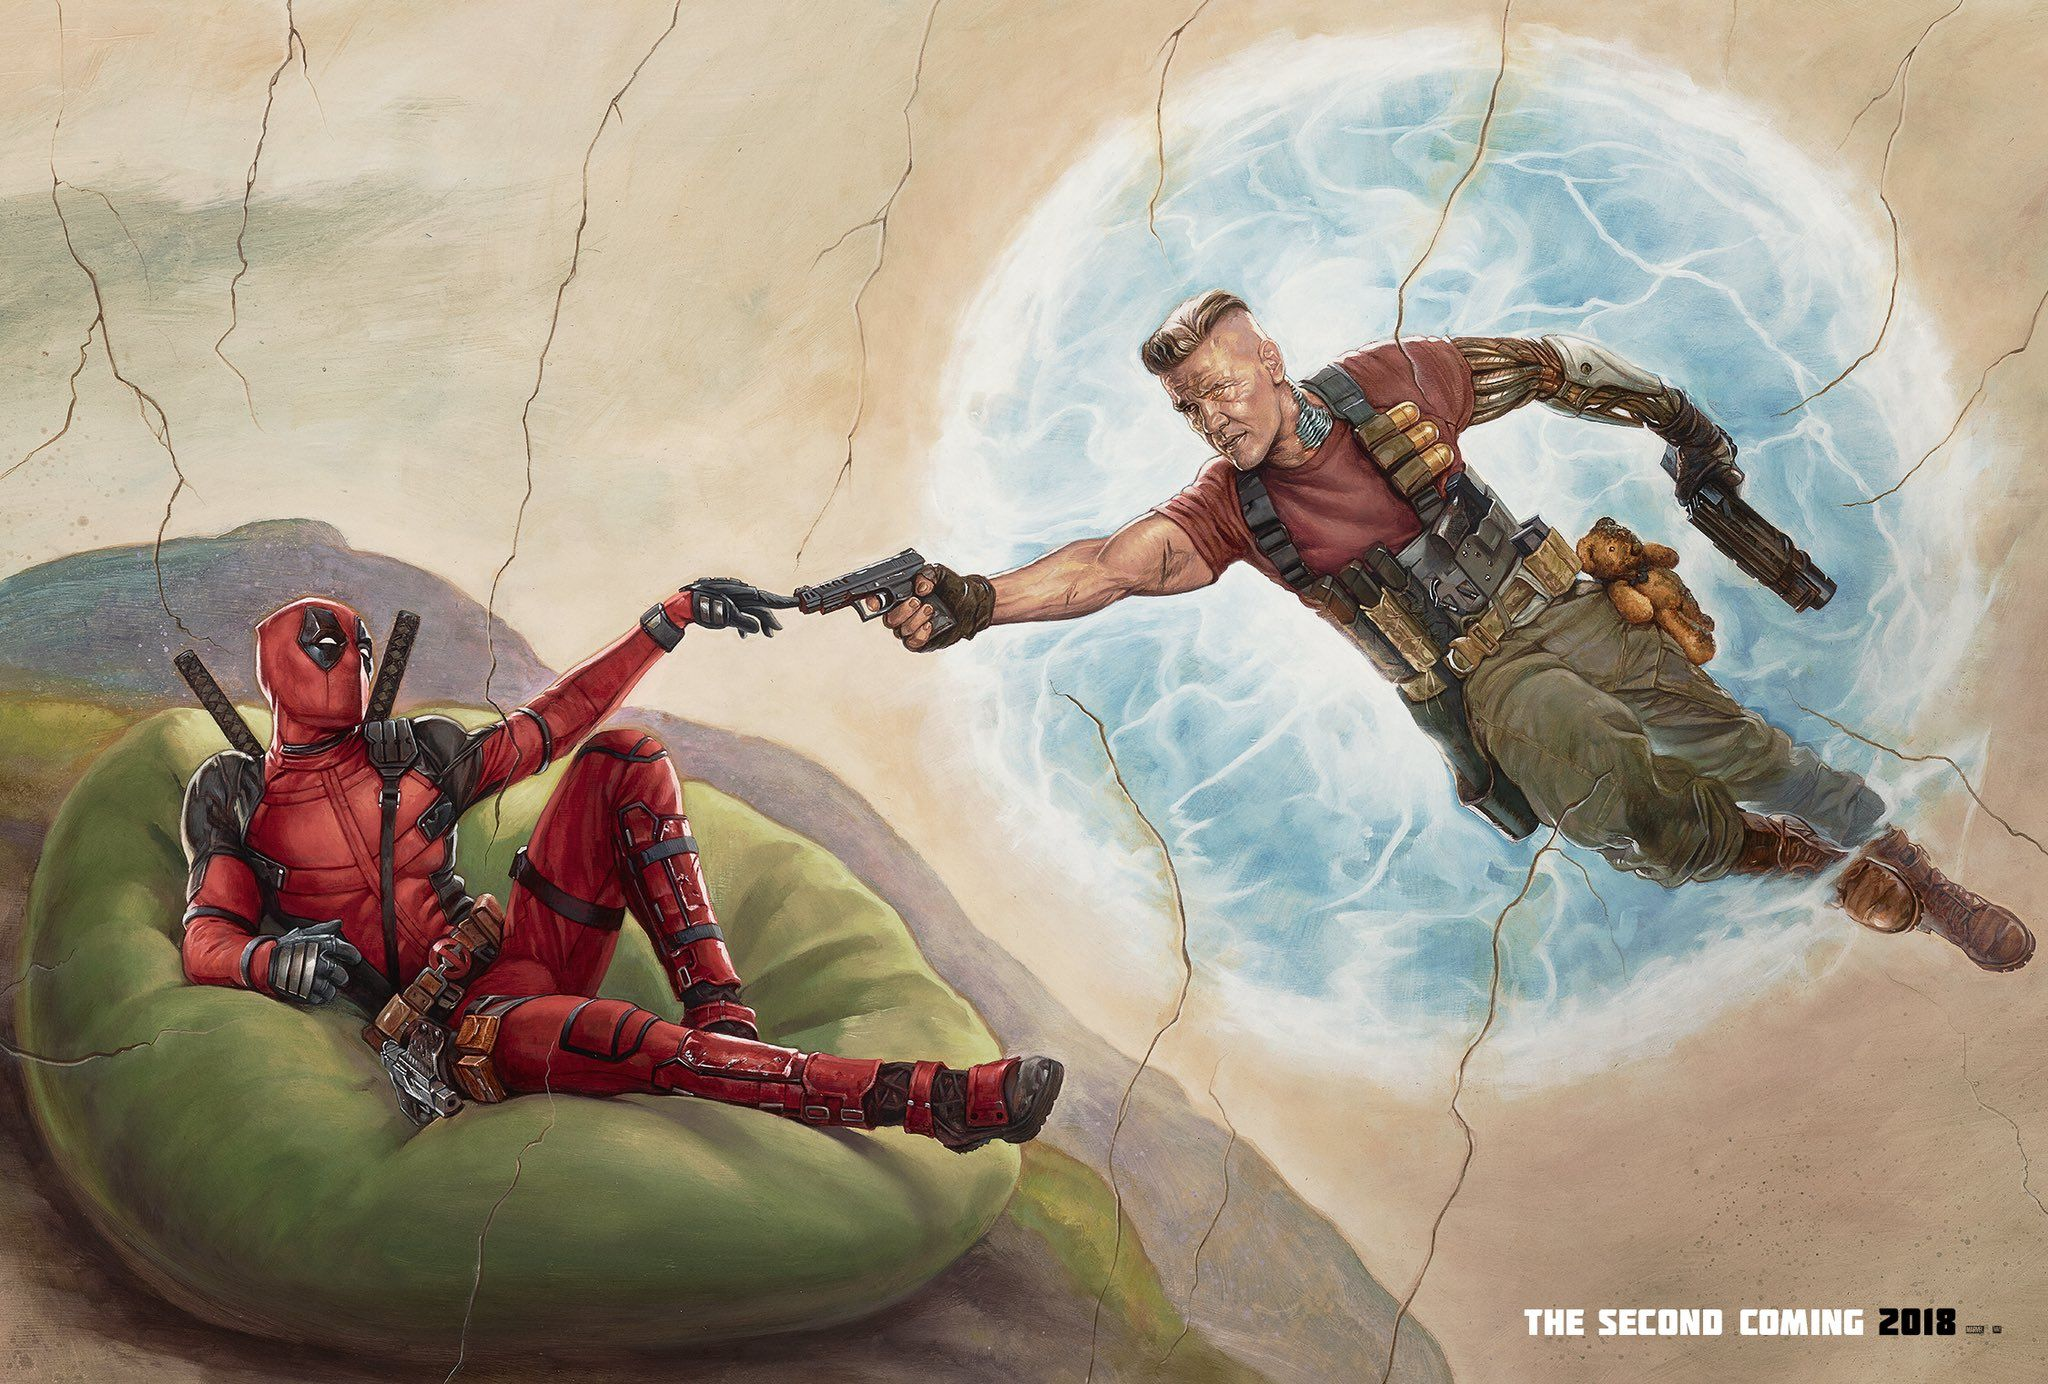 Ryan Reynolds Shares New 'Deadpool 2' Art Featuring Cable